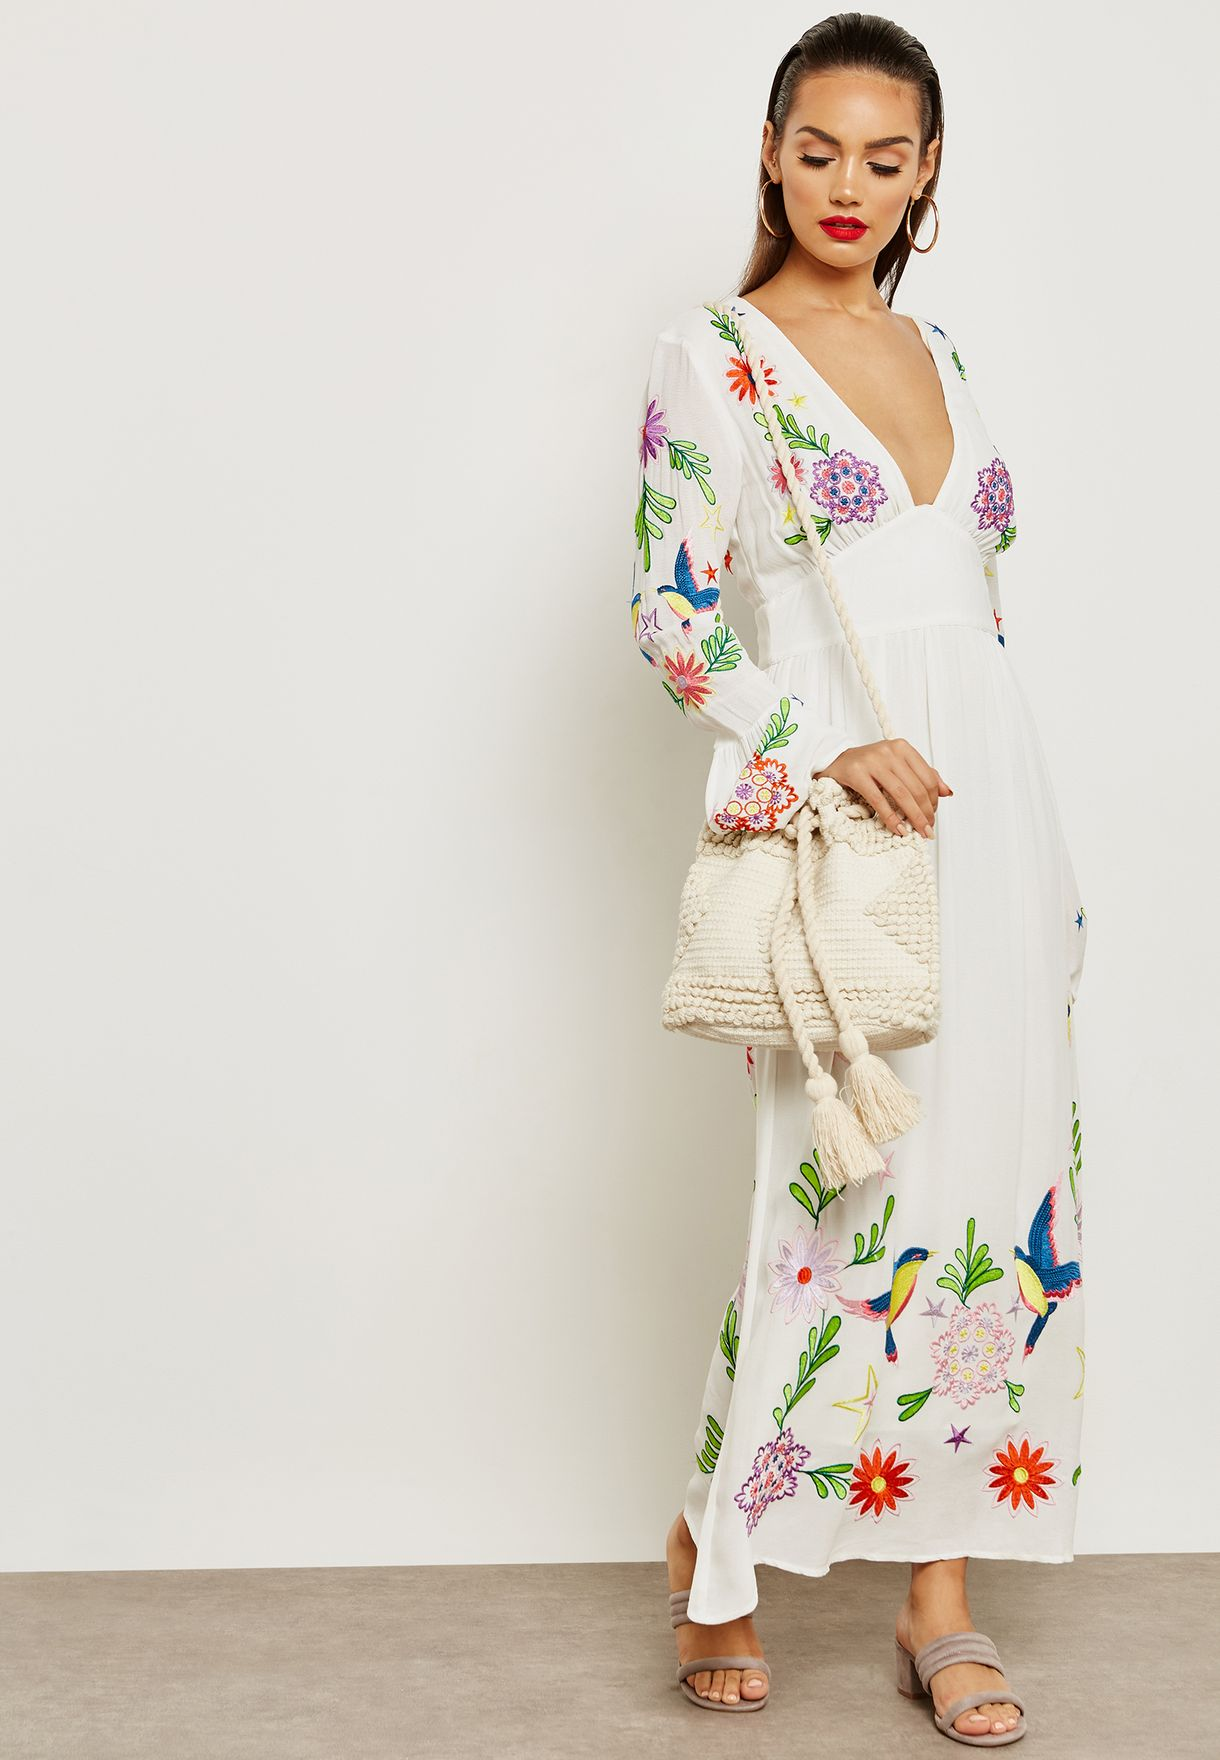 28b0ef7551d3 Shop Topshop white Embroidered Plunge Midi Dress 10C01PWHT for Women ...